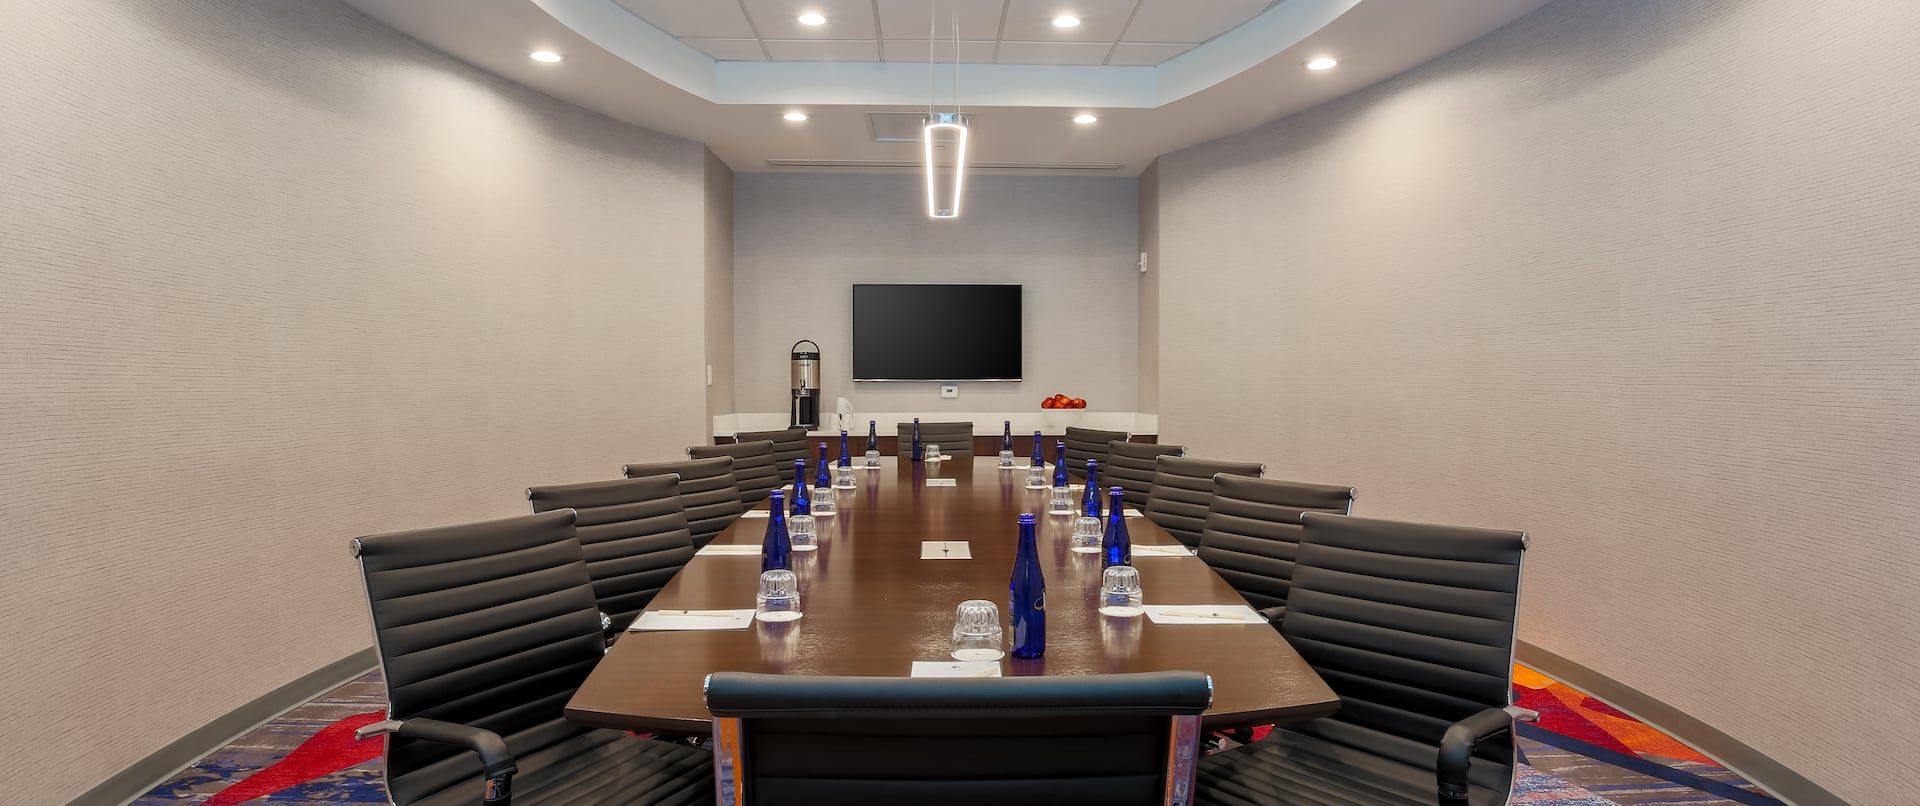 TV and Boardroom Table Surrounded by Black Chairs in Meeting Space